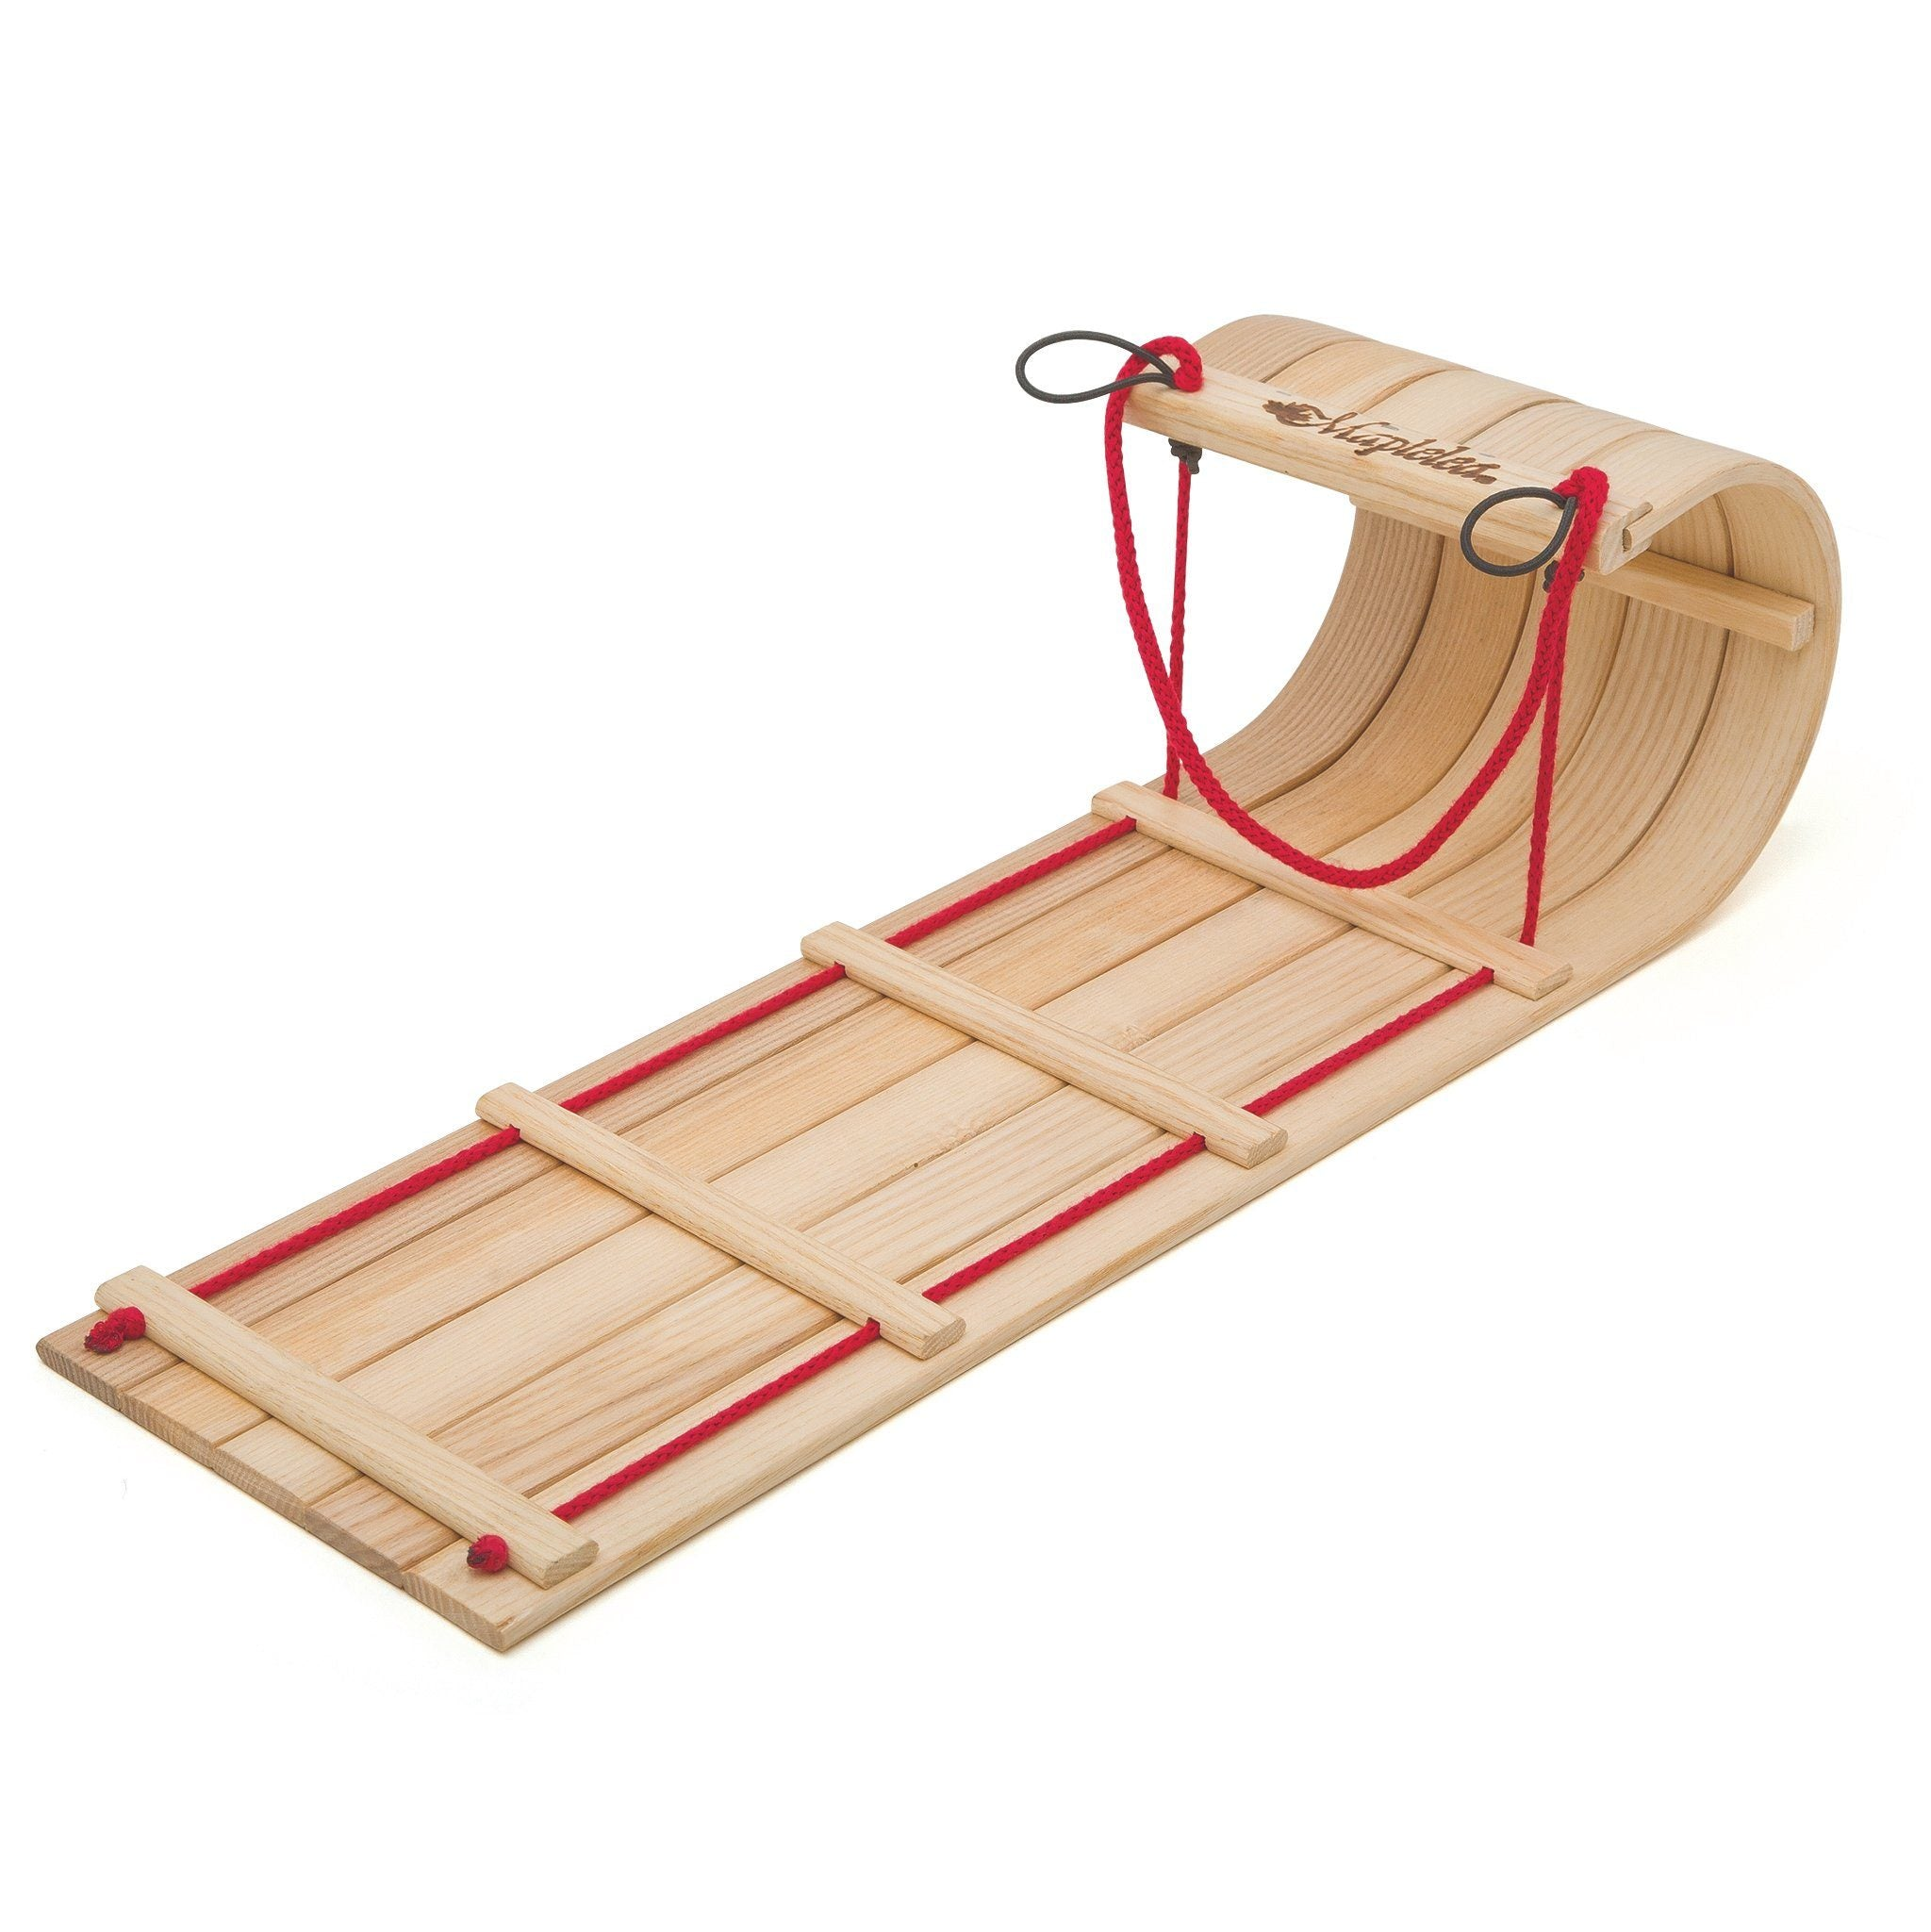 Wooden toboggan fits all 18 inch dolls.